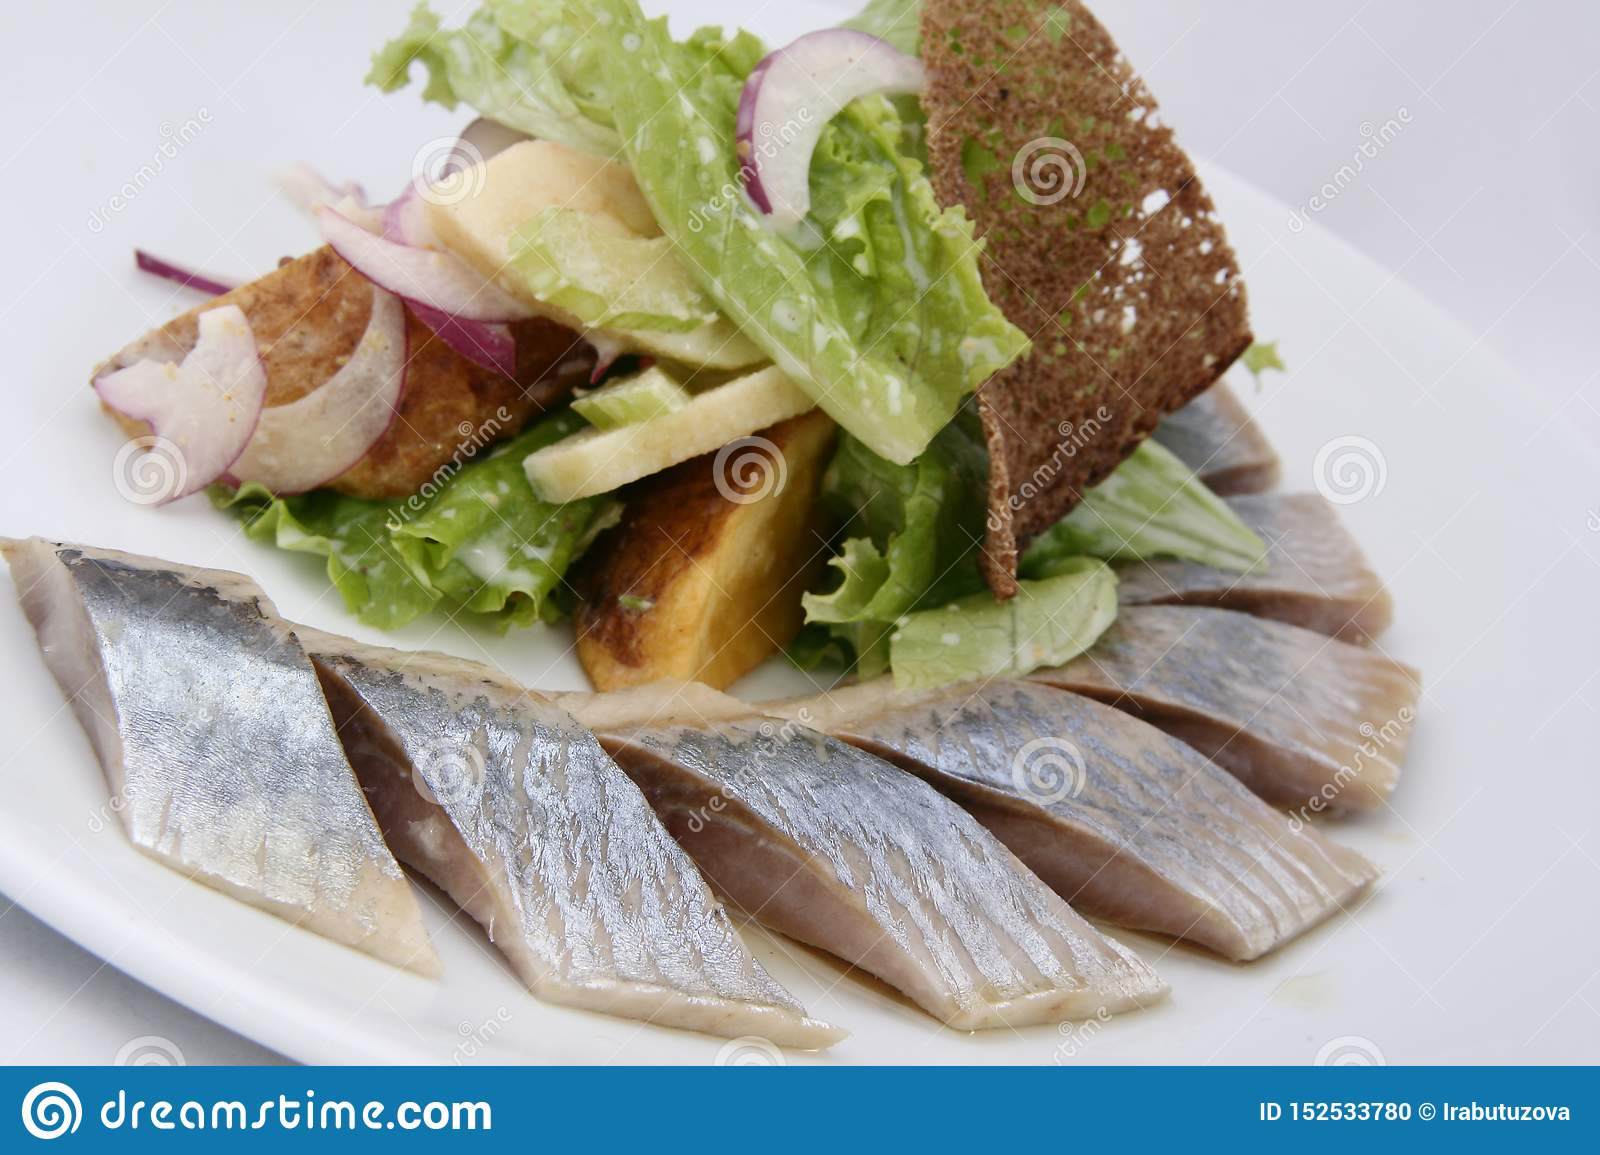 Herring fish with potatoes slices, greens, red onion and rye bread